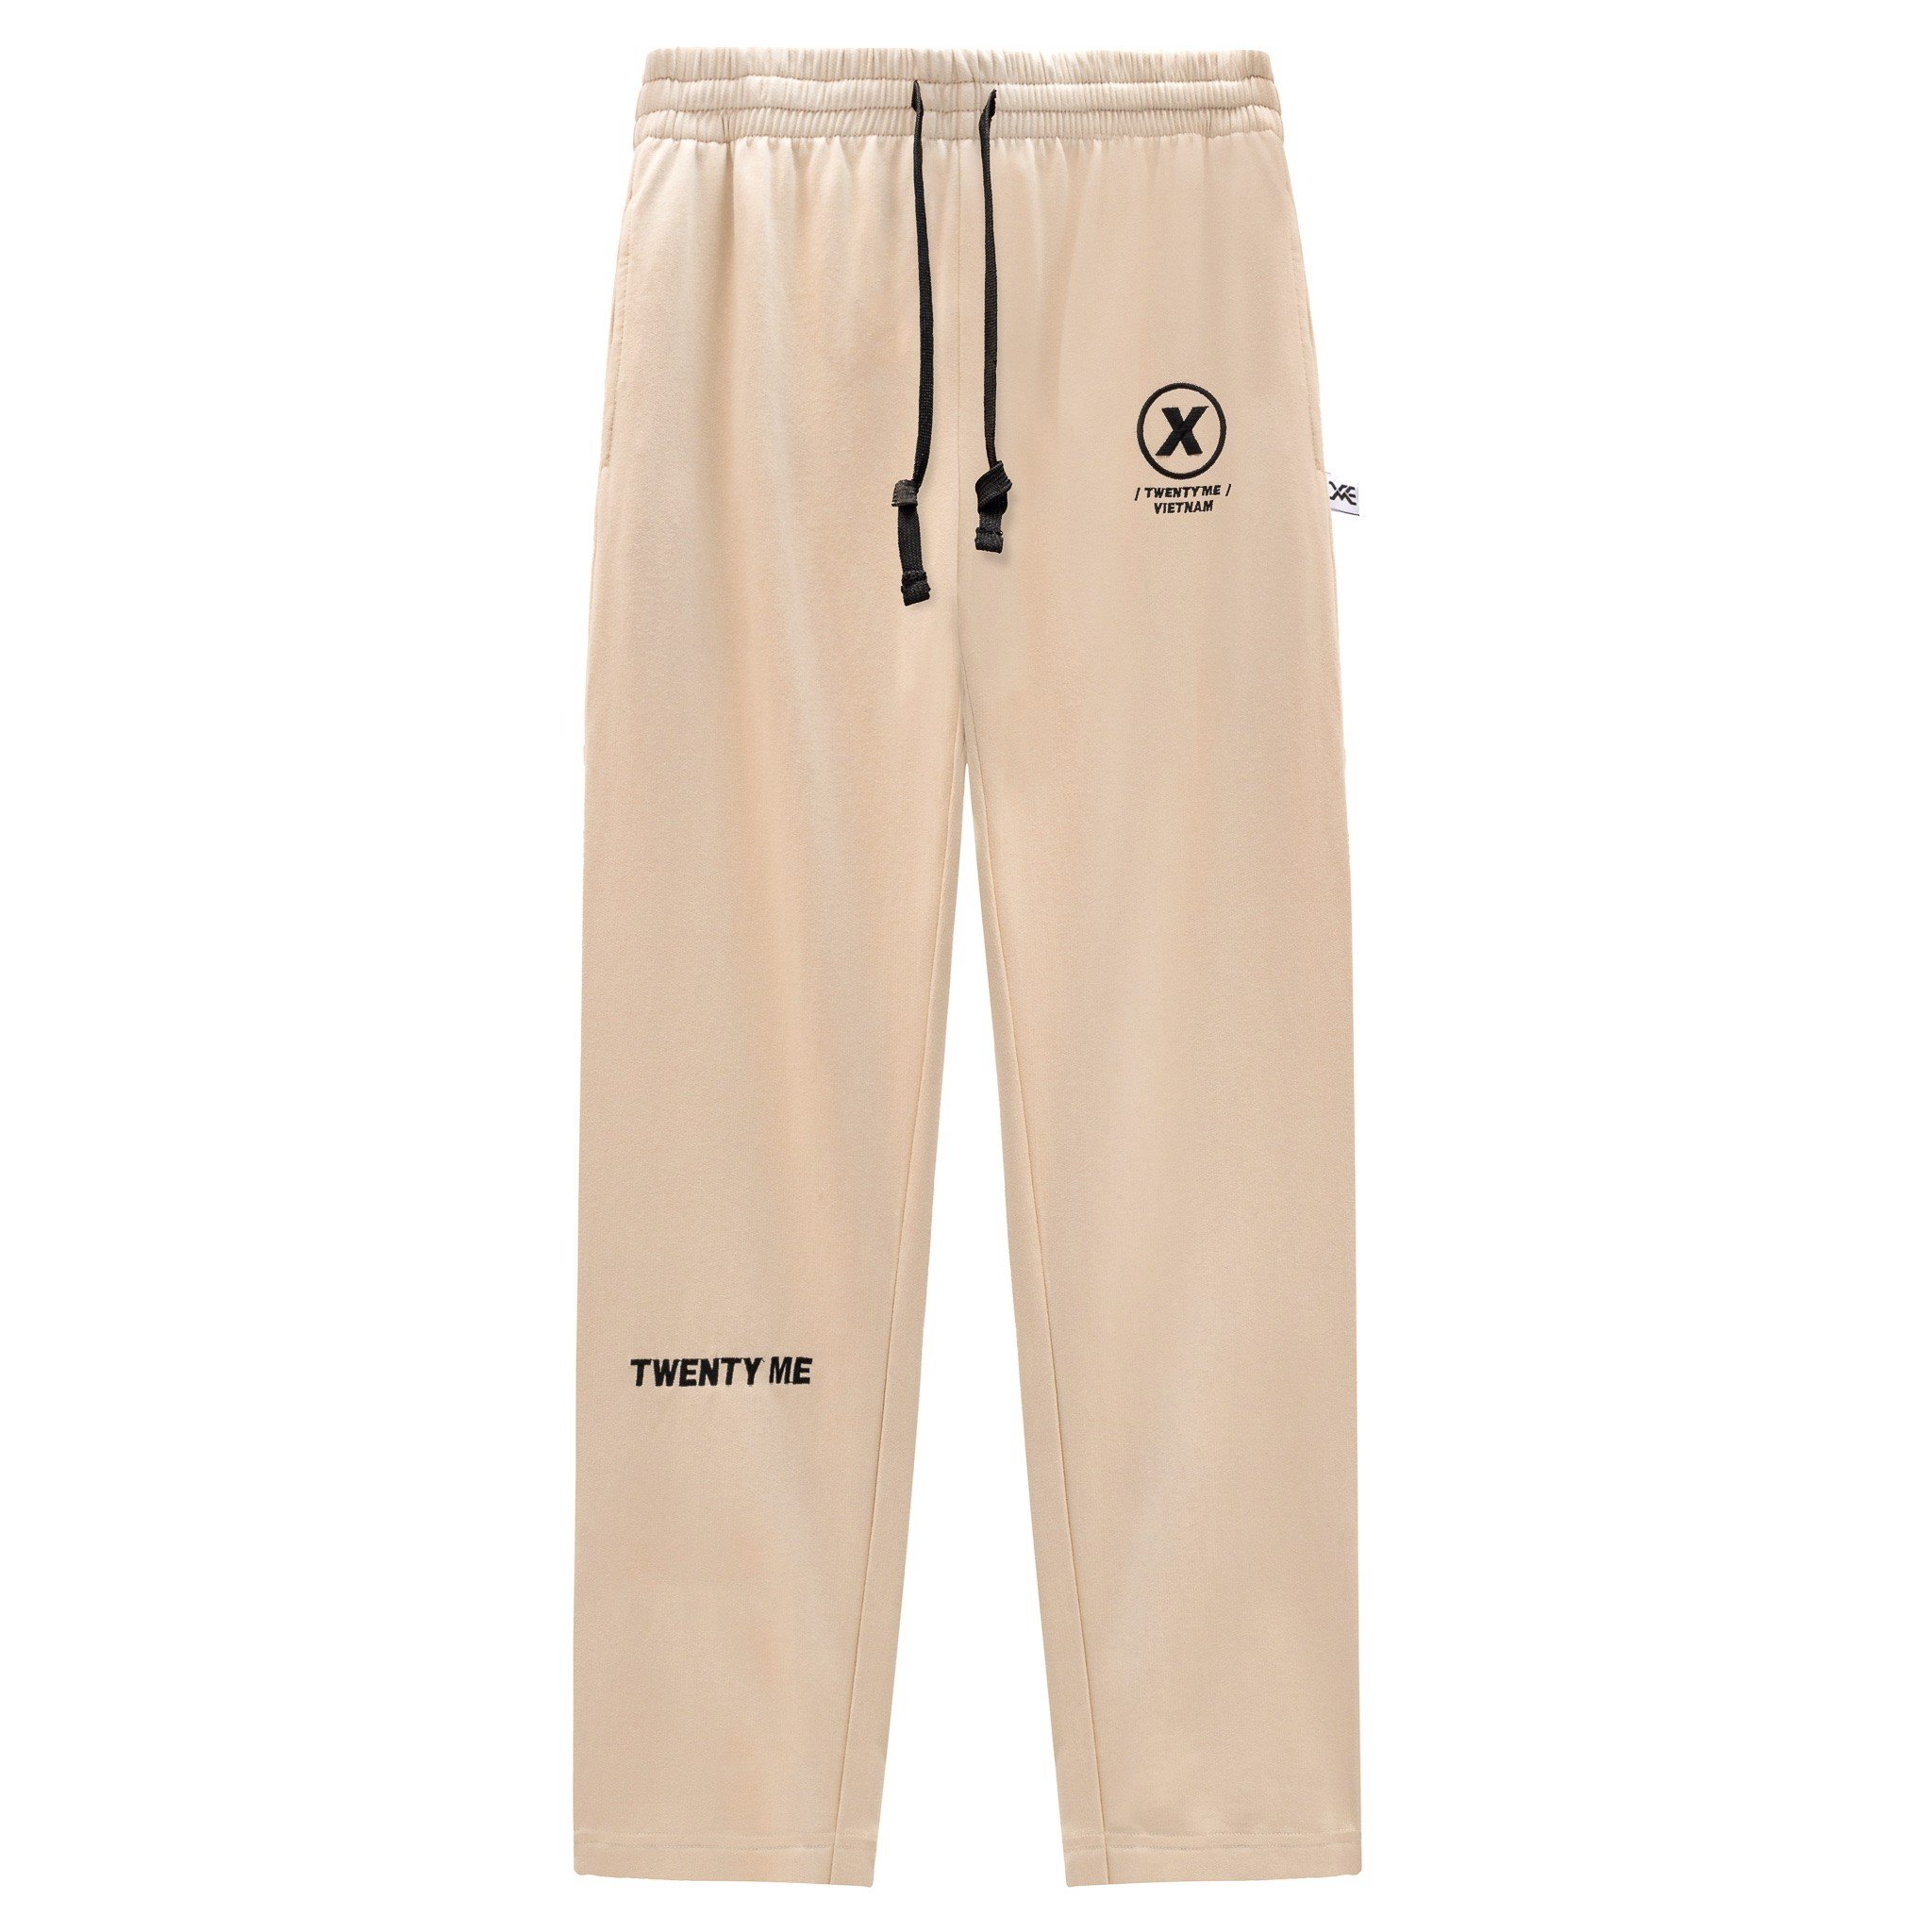 Origin Sweatpants - Beige